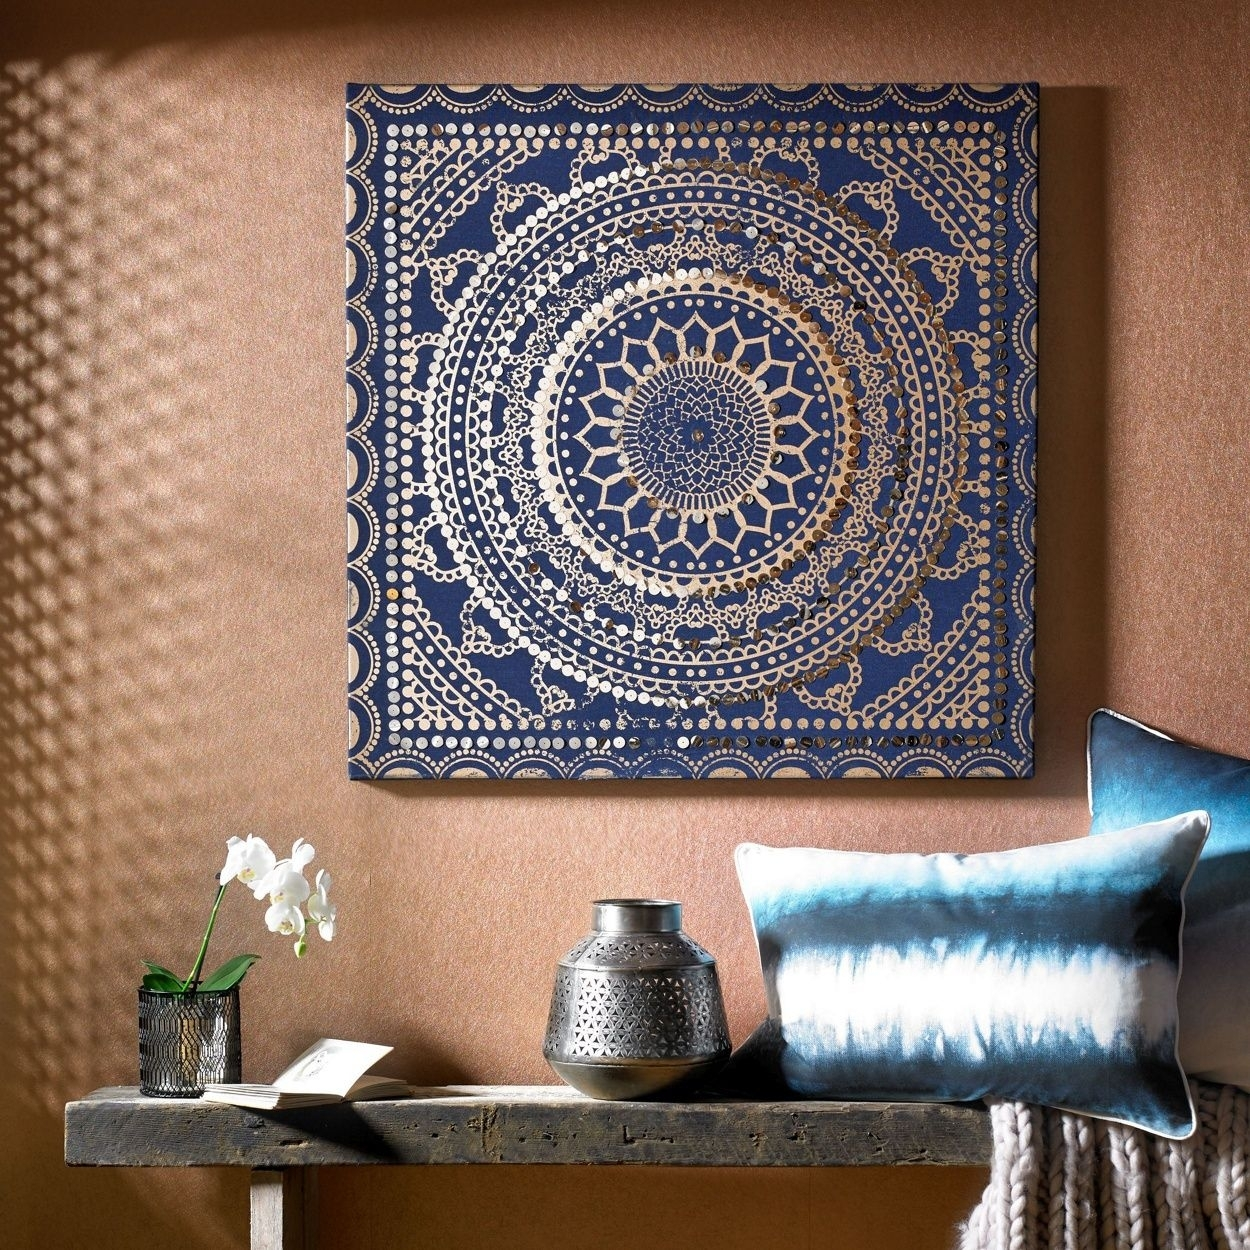 Make A Statement With This Moroccan Inspired Fabric Canvas (View 11 of 15)